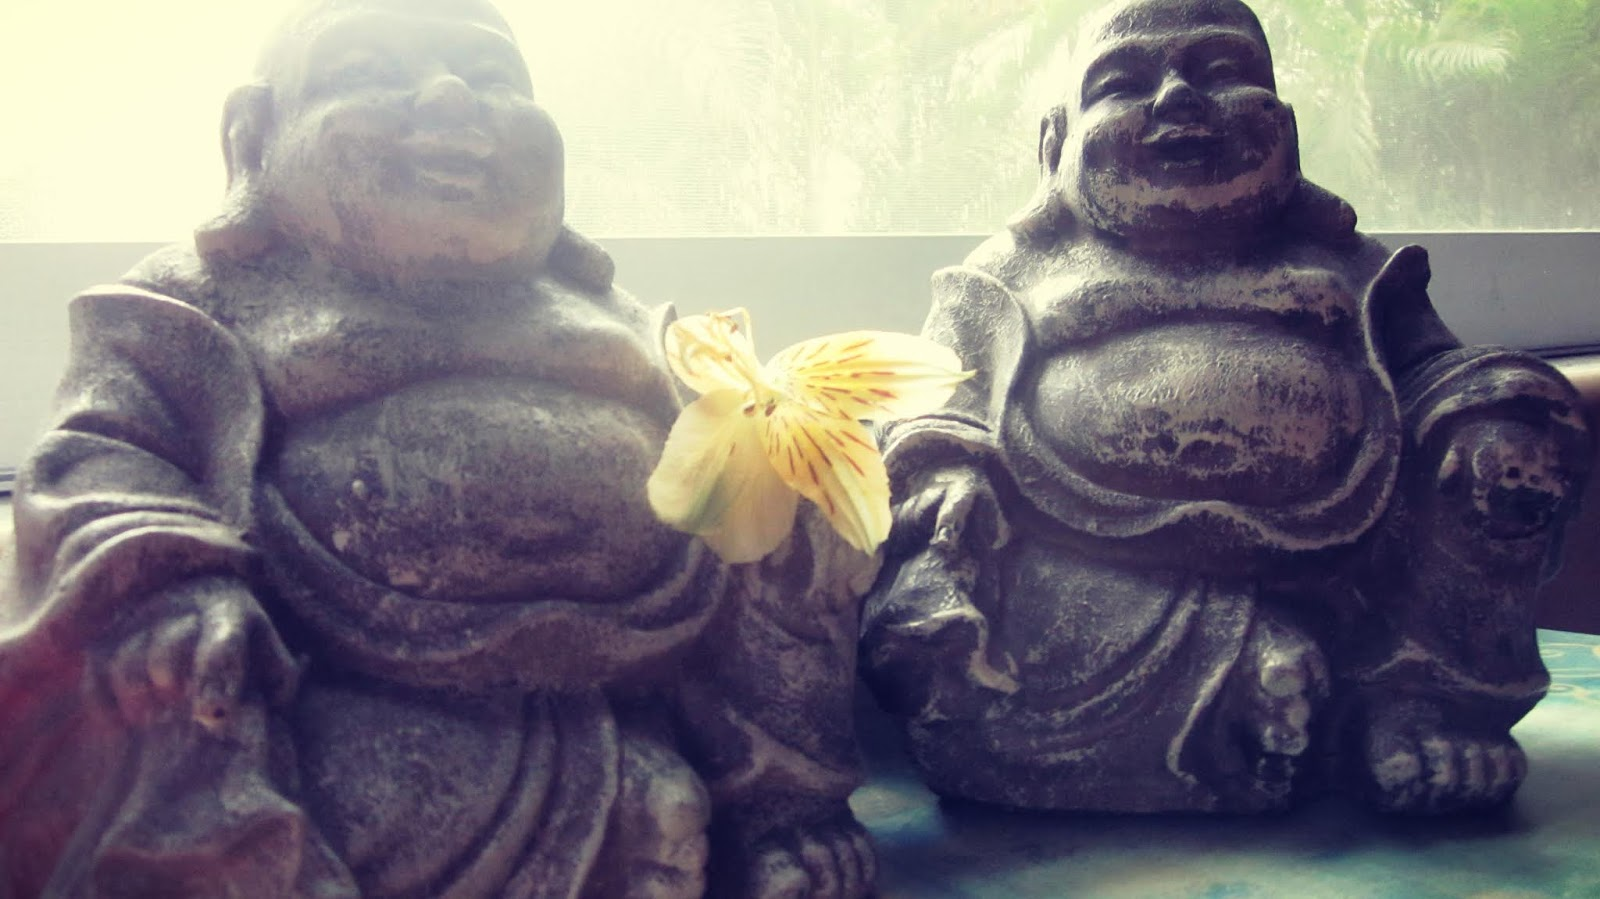 Buddhist Statues for Peace and Tranquility + Mindful Living